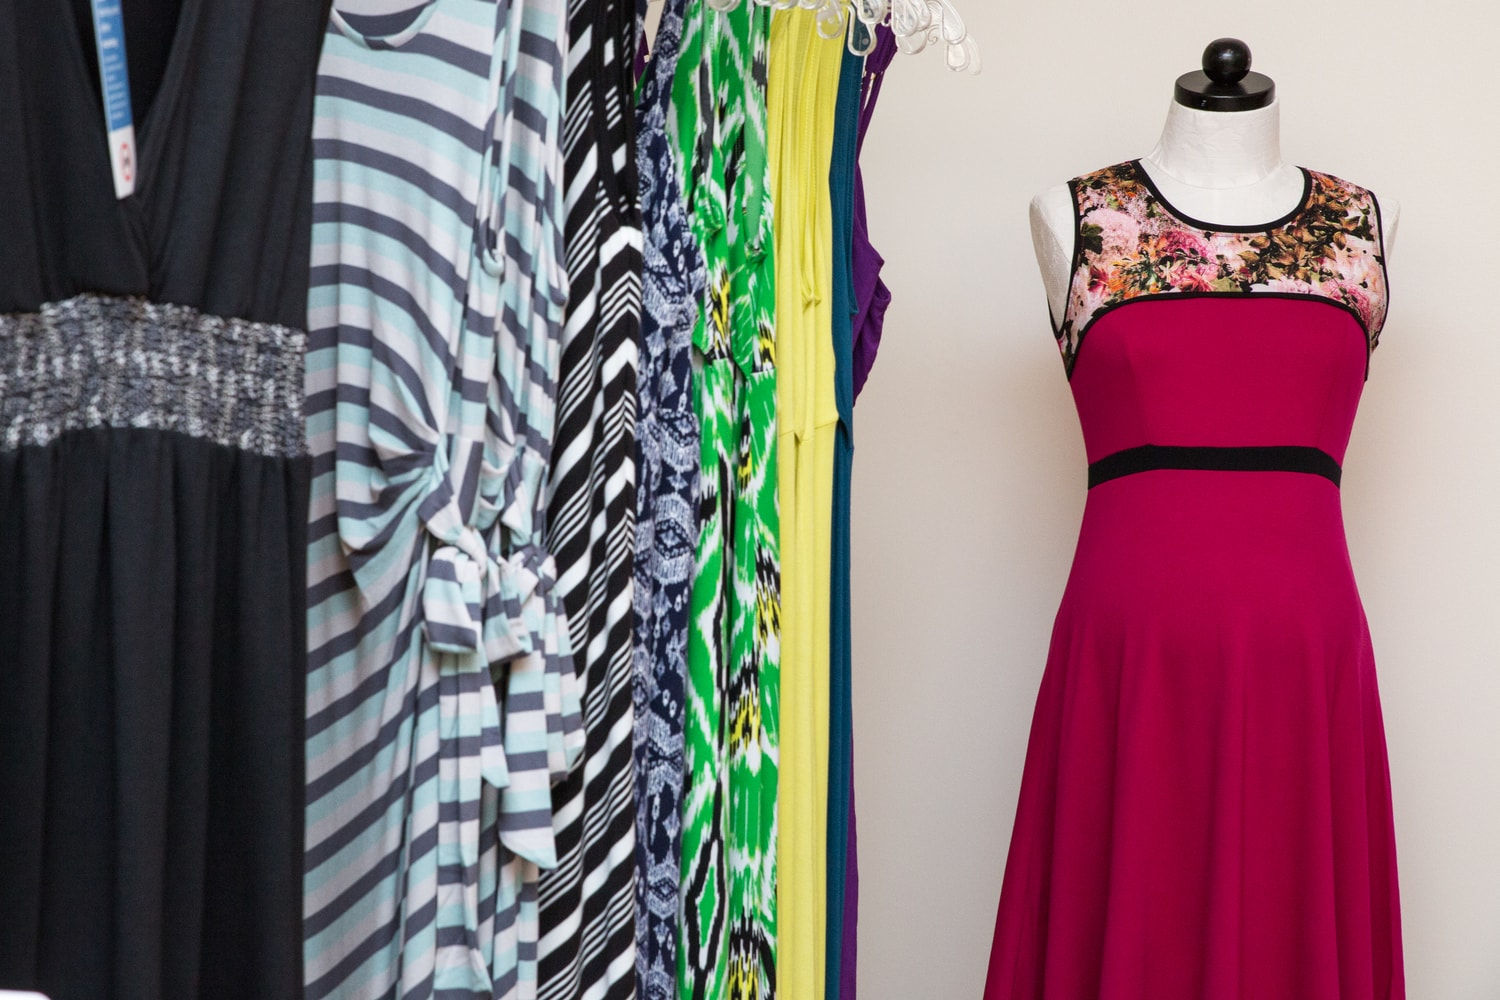 Cute Maternity Dresses & Skirts | mama 'hood Maternity Store Denver & Boulder, CO